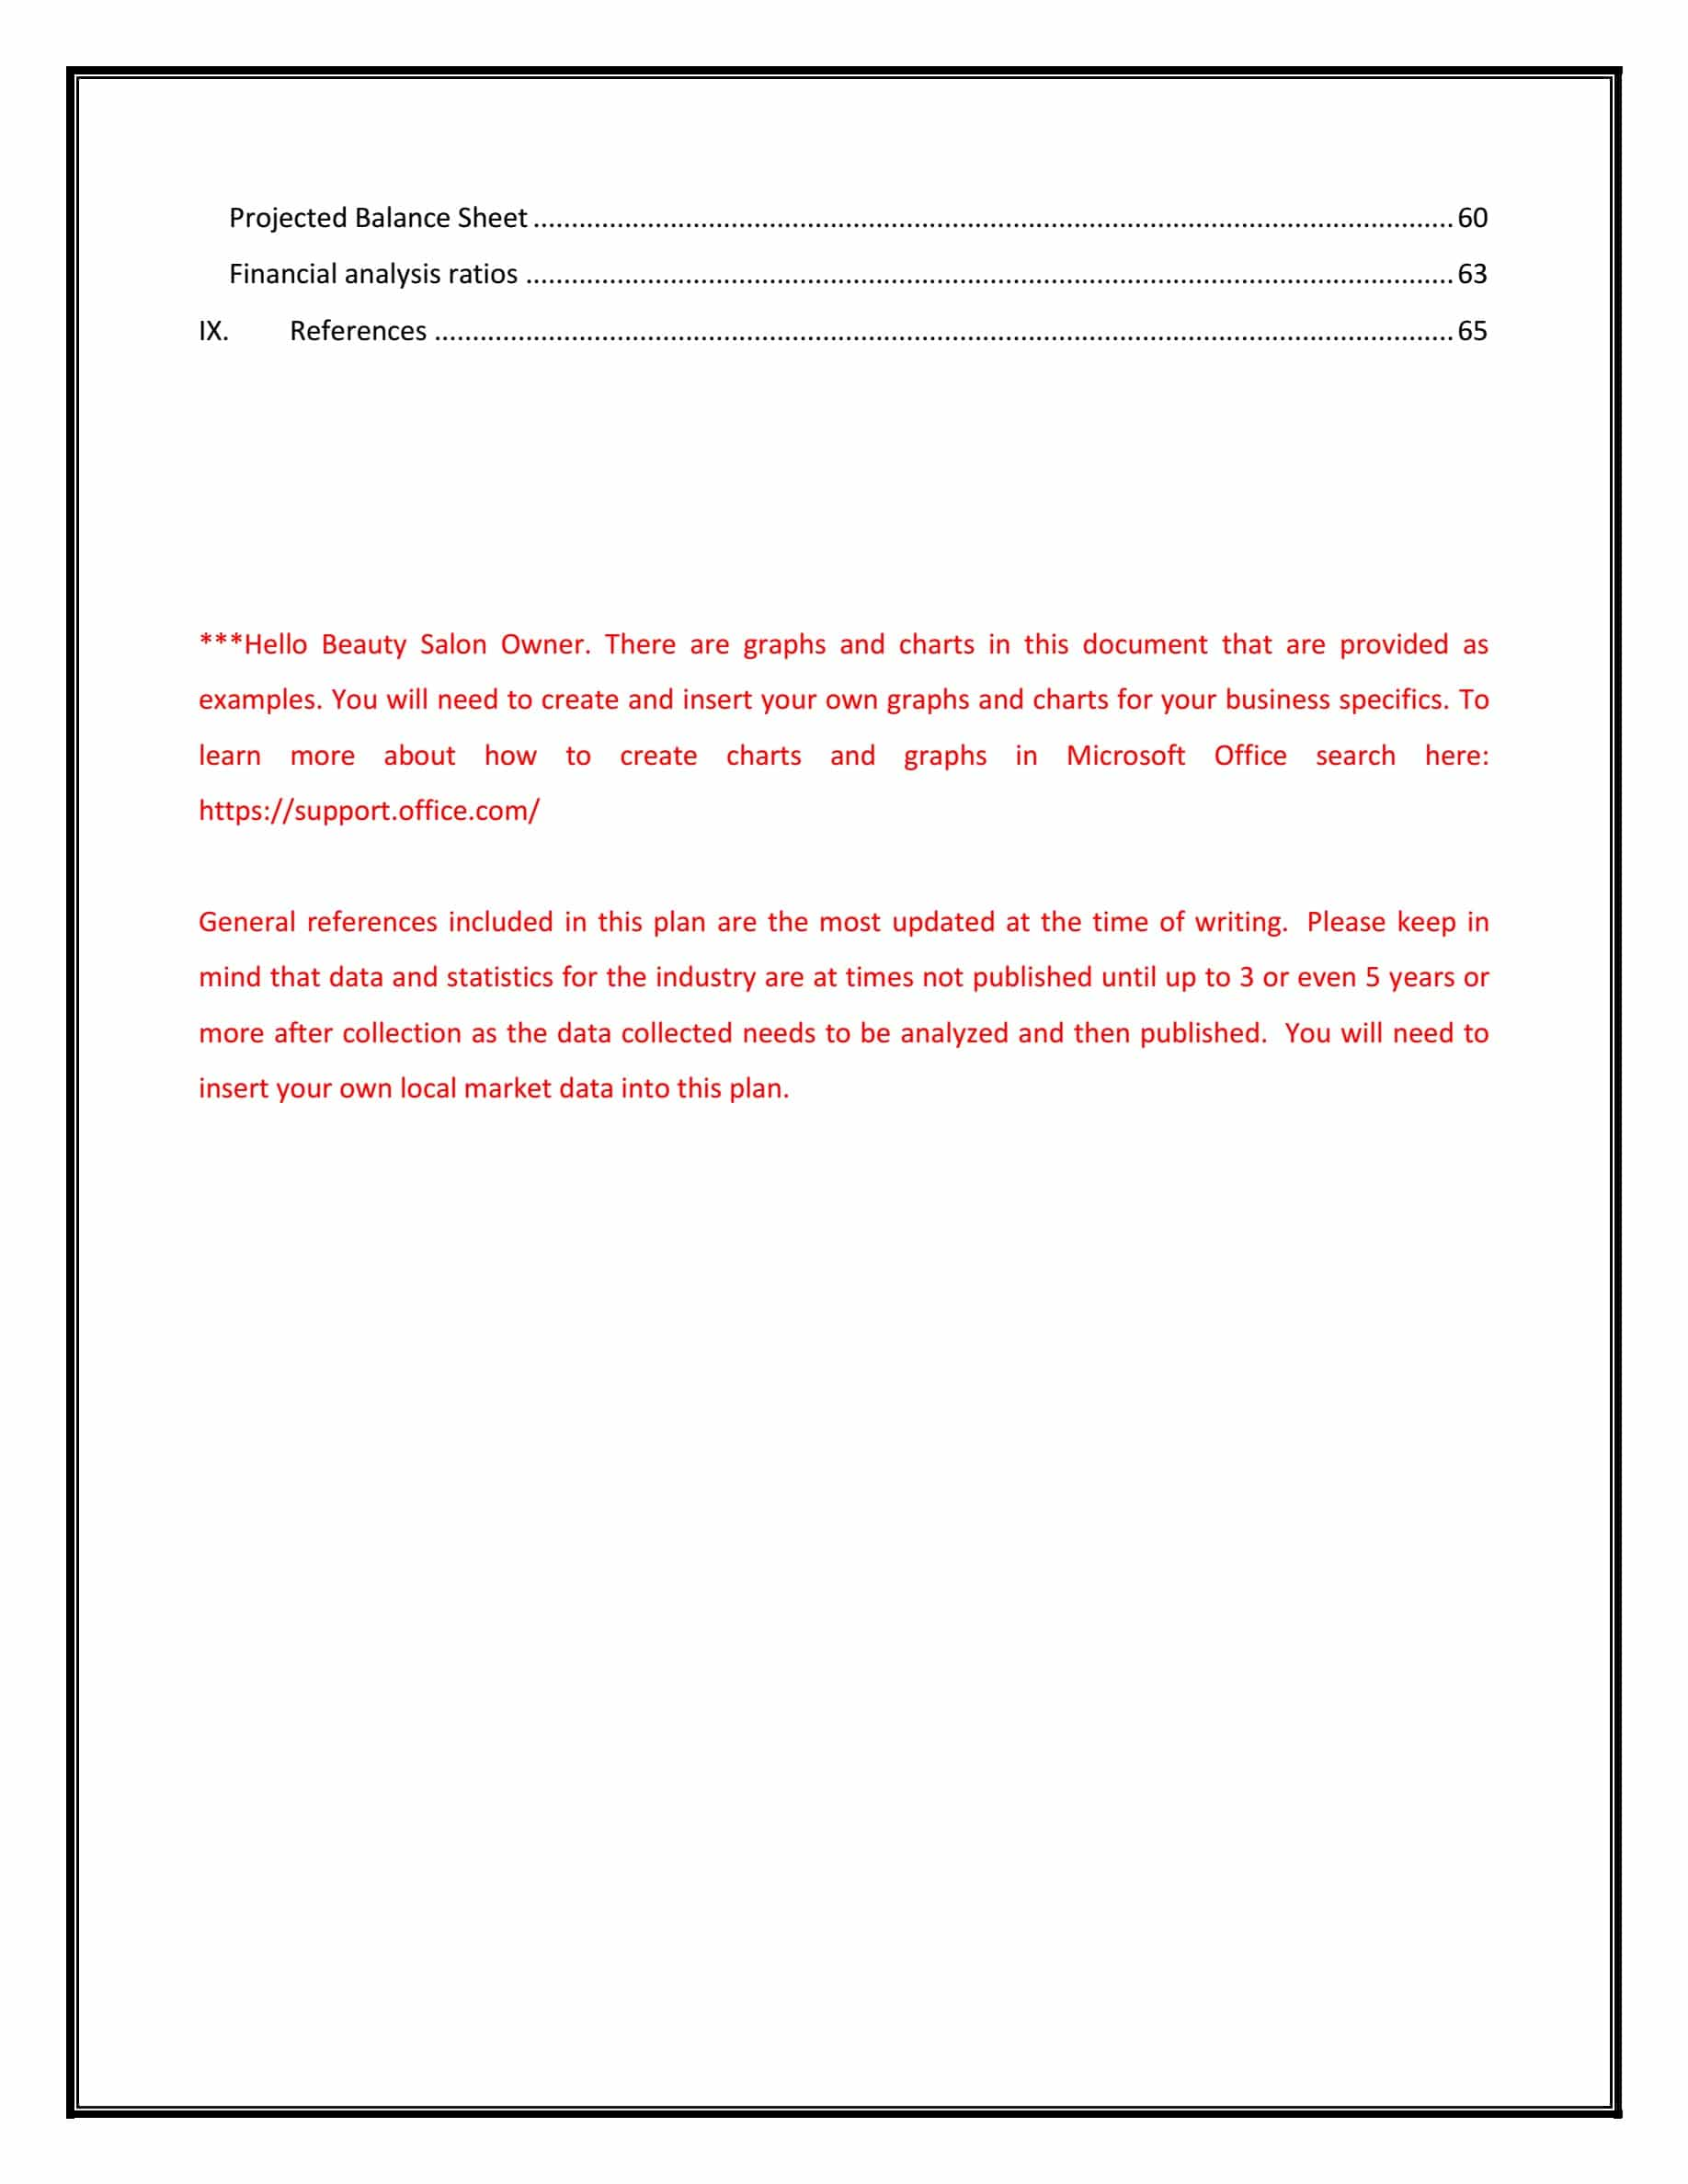 Hair Salon Business Plan Template | table of contents page 3 Beauty Salon Business Plan Template